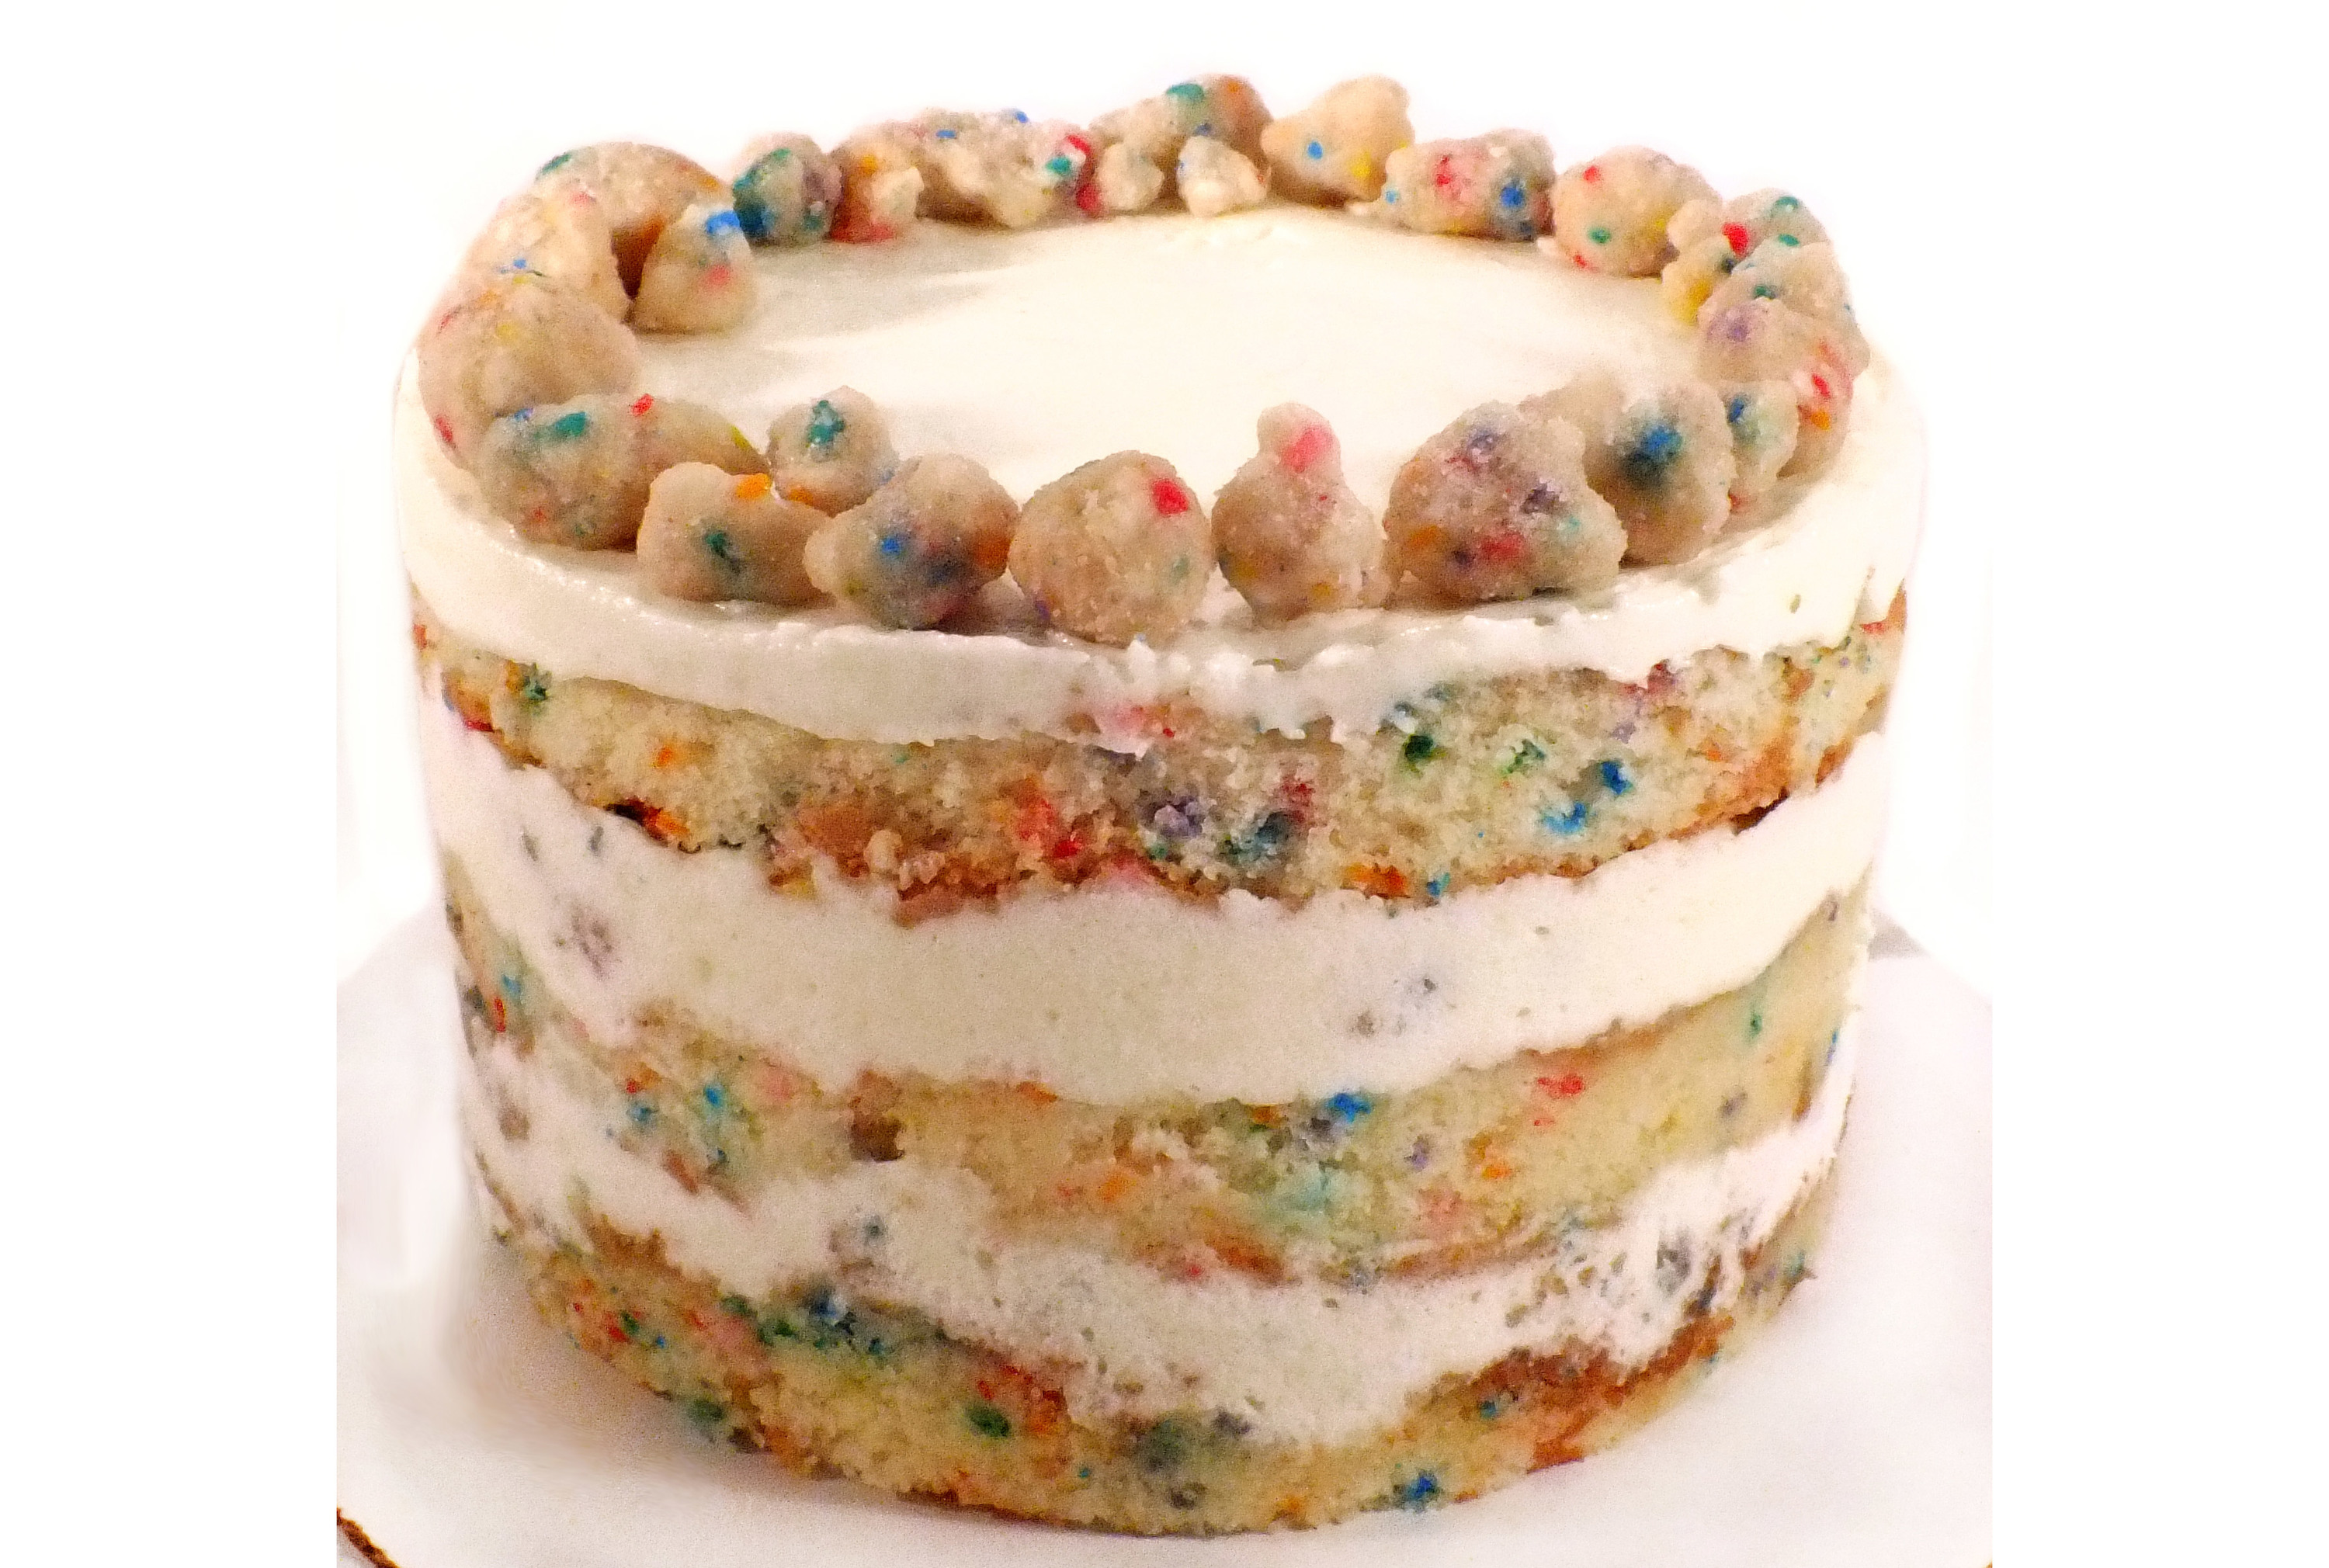 Find birthday cake in NYC to celebrate a very special day